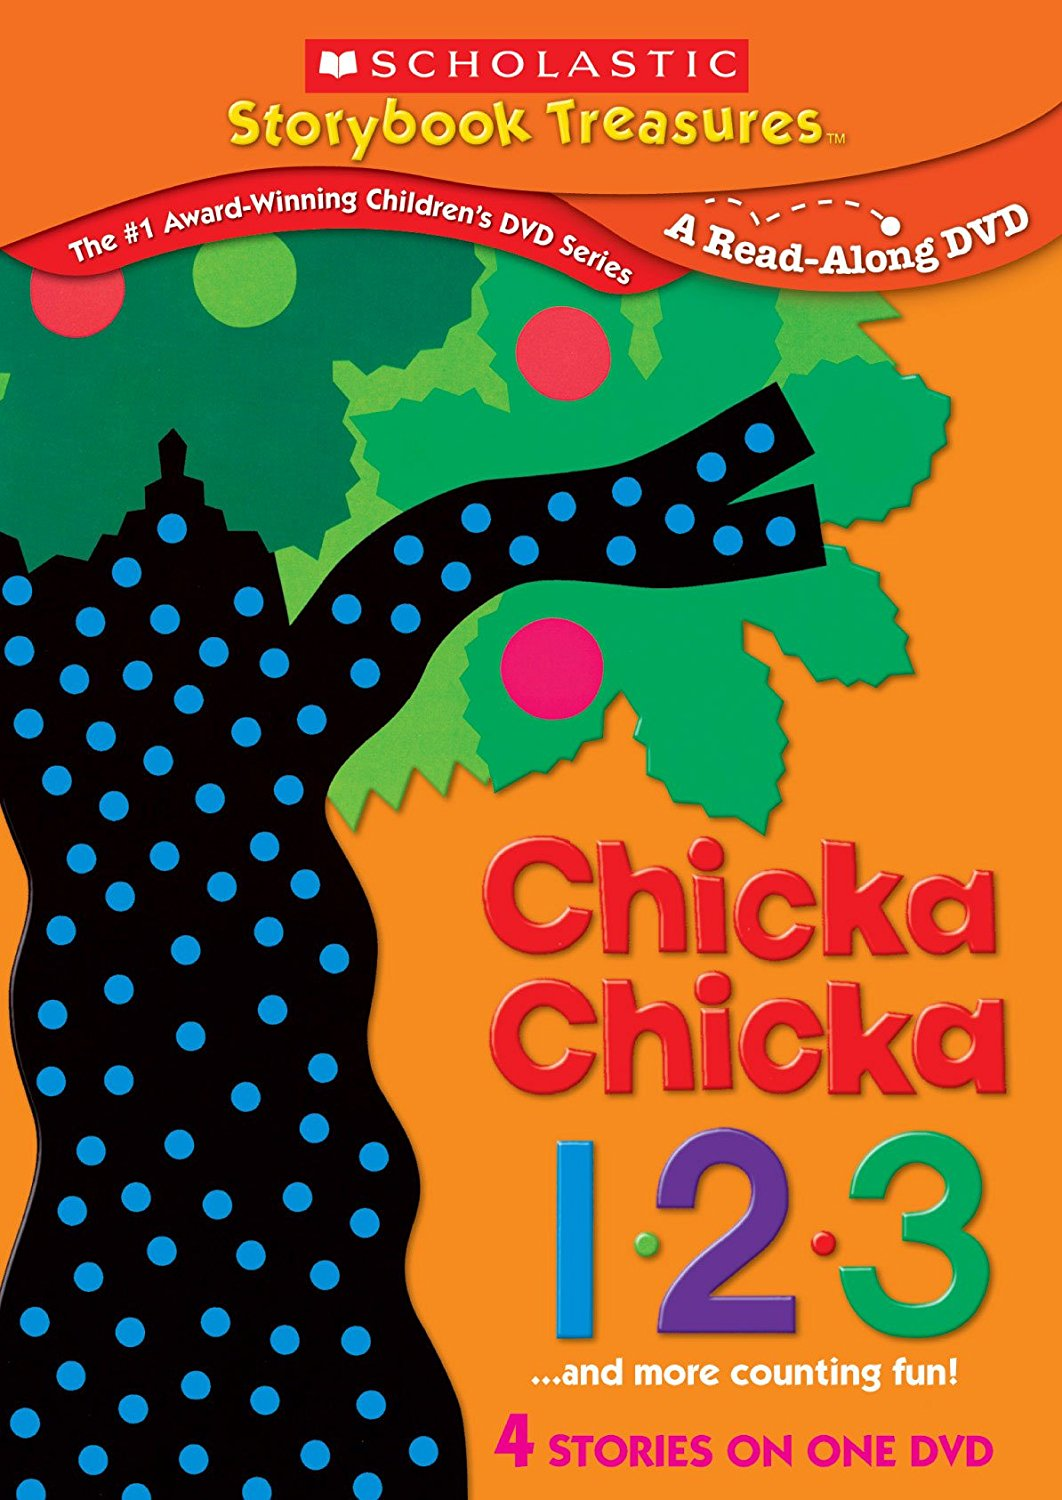 Chicka Chicka 123 And More Counting Fun - A Read Along by Scholastic Storybook Treasures